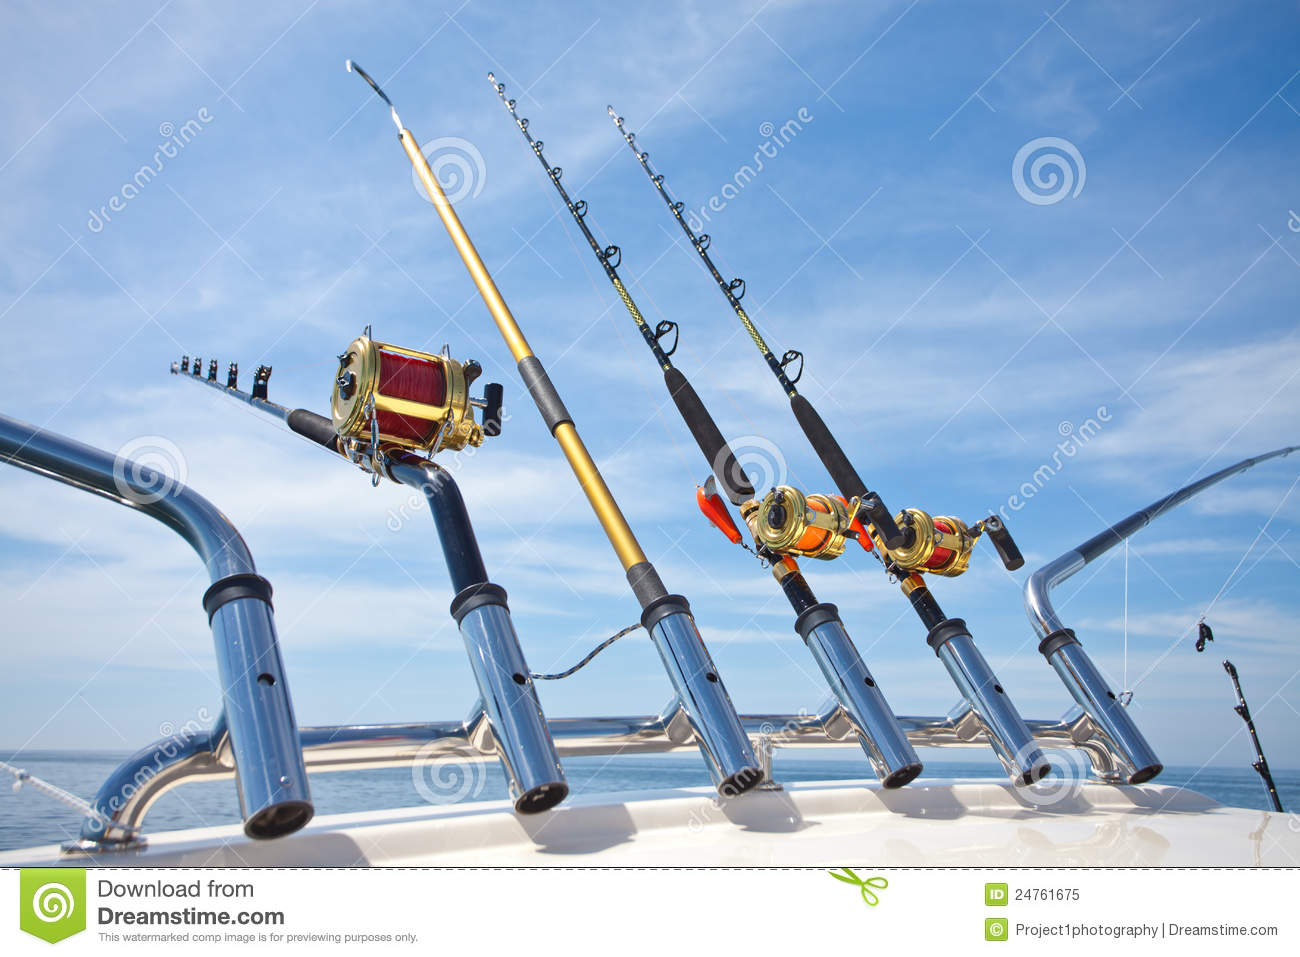 Big game fishing royalty free stock photo image 24761675 for Big game fishing